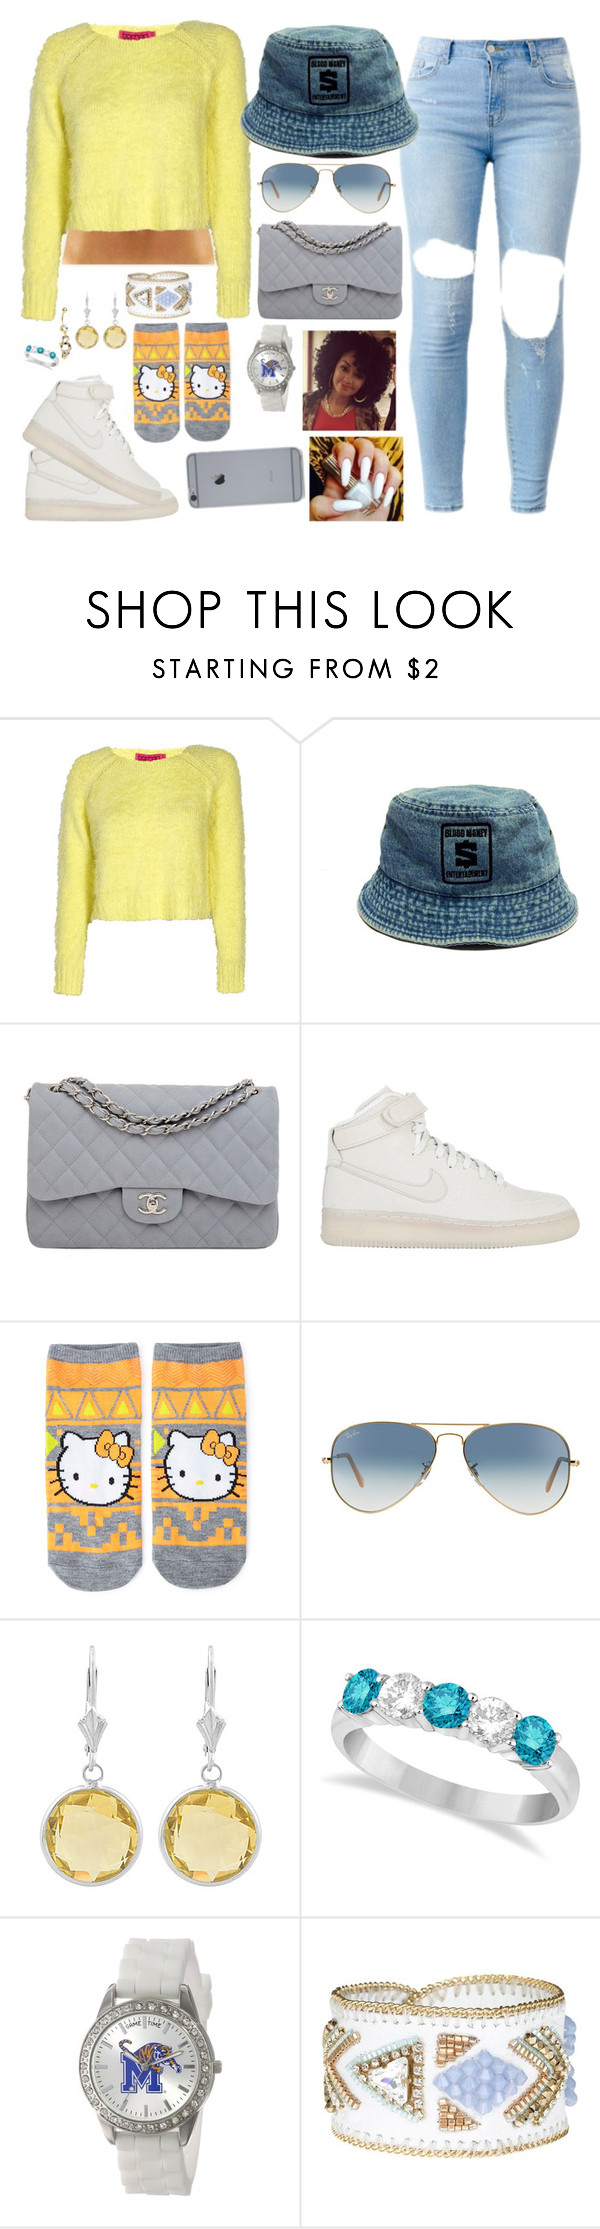 """""""Leiah is gonna be with us ! #SoHappy"""" by cissylion ❤ liked on Polyvore featuring Boohoo, Chanel, NIKE, Forever 21, Ray-Ban, Fremada, Allurez, Game Time and BUBA"""